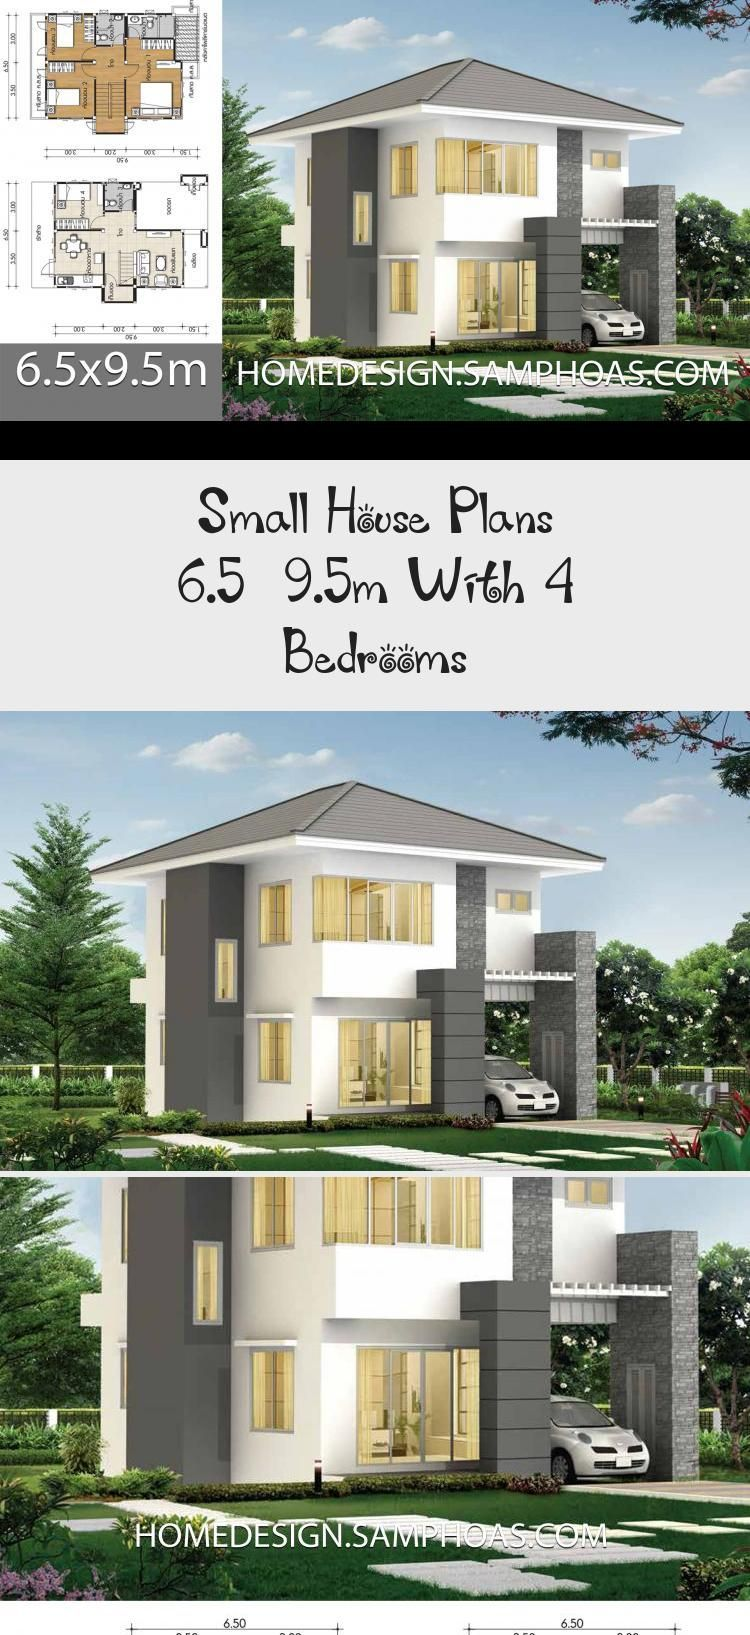 Small House Plans 6 5x9 5m With 4 Bedrooms Home Ideassearch Smallhouseplansmodern Smallhouseplanscabin Smallhous In 2020 Small House Plans House Plans Small House